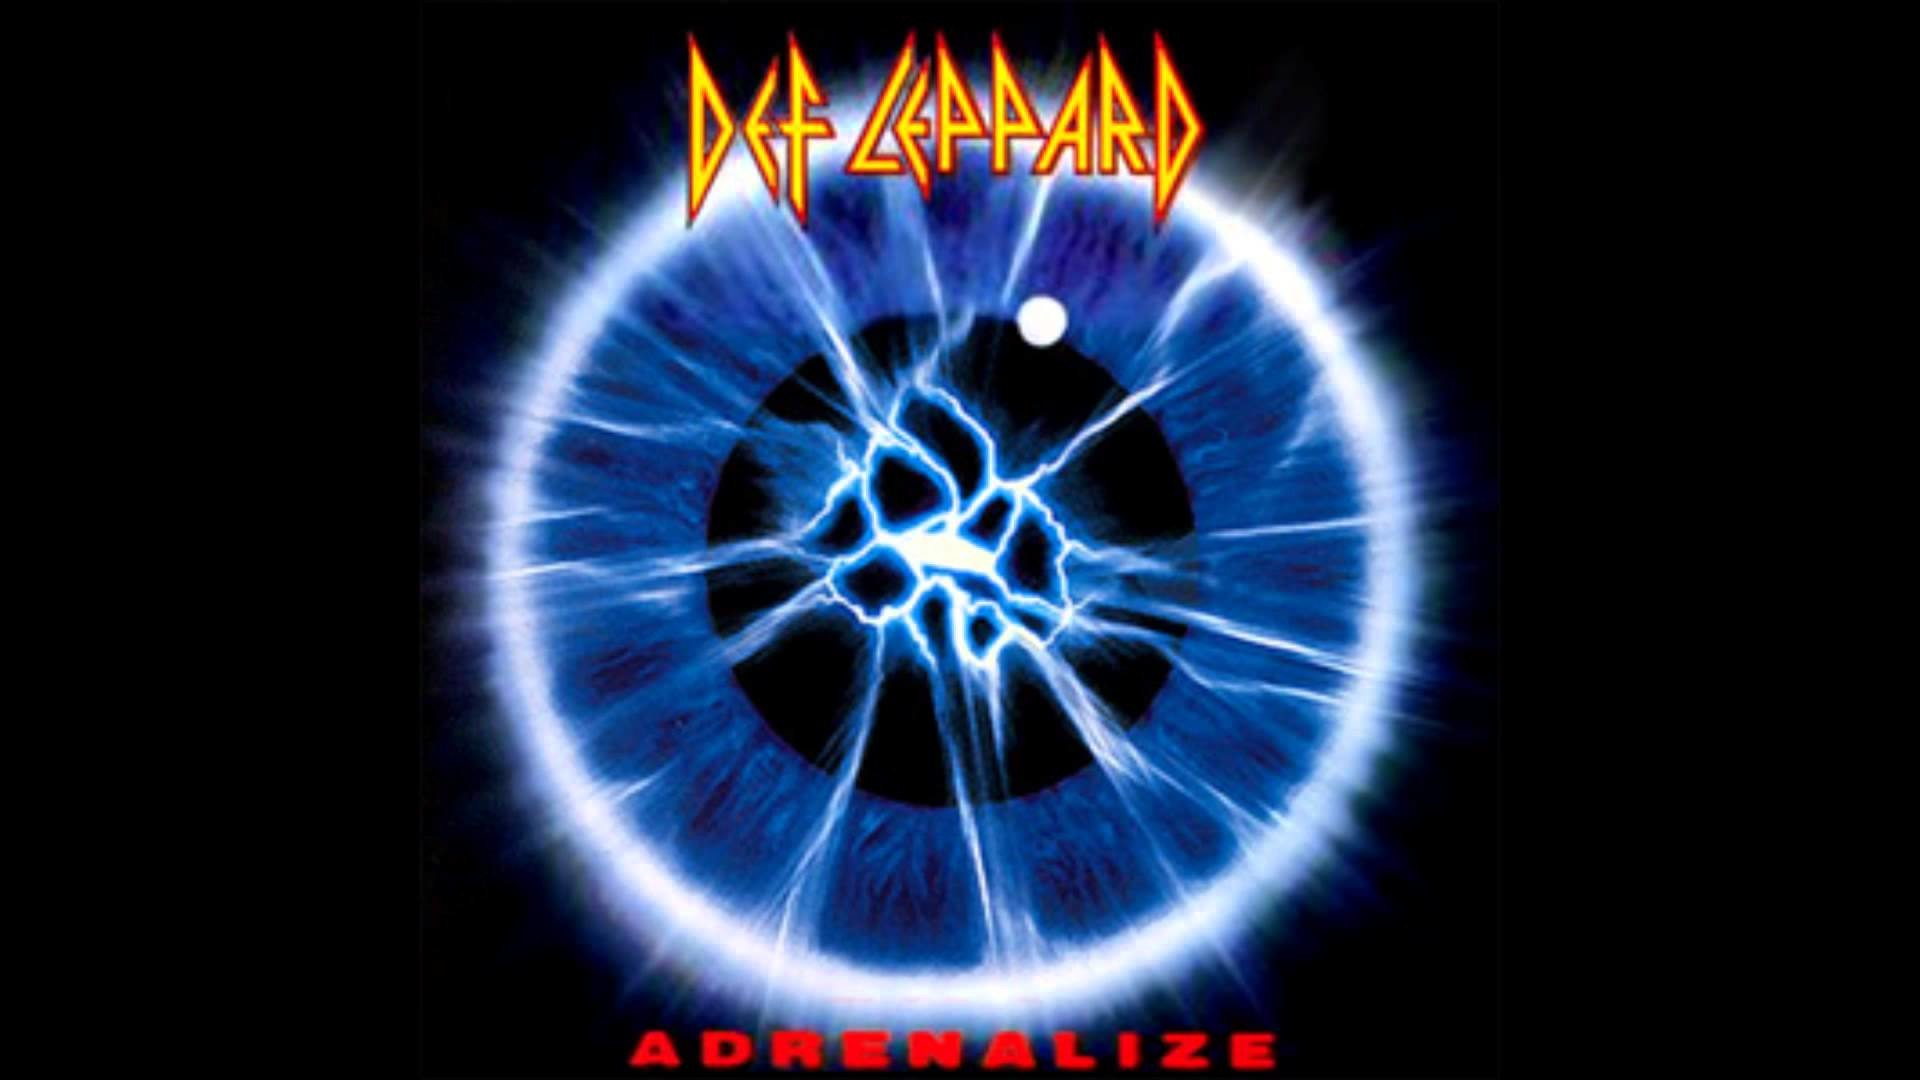 Res: 1920x1080, Def Leppard Wallpapers 13 - 1920 X 1080